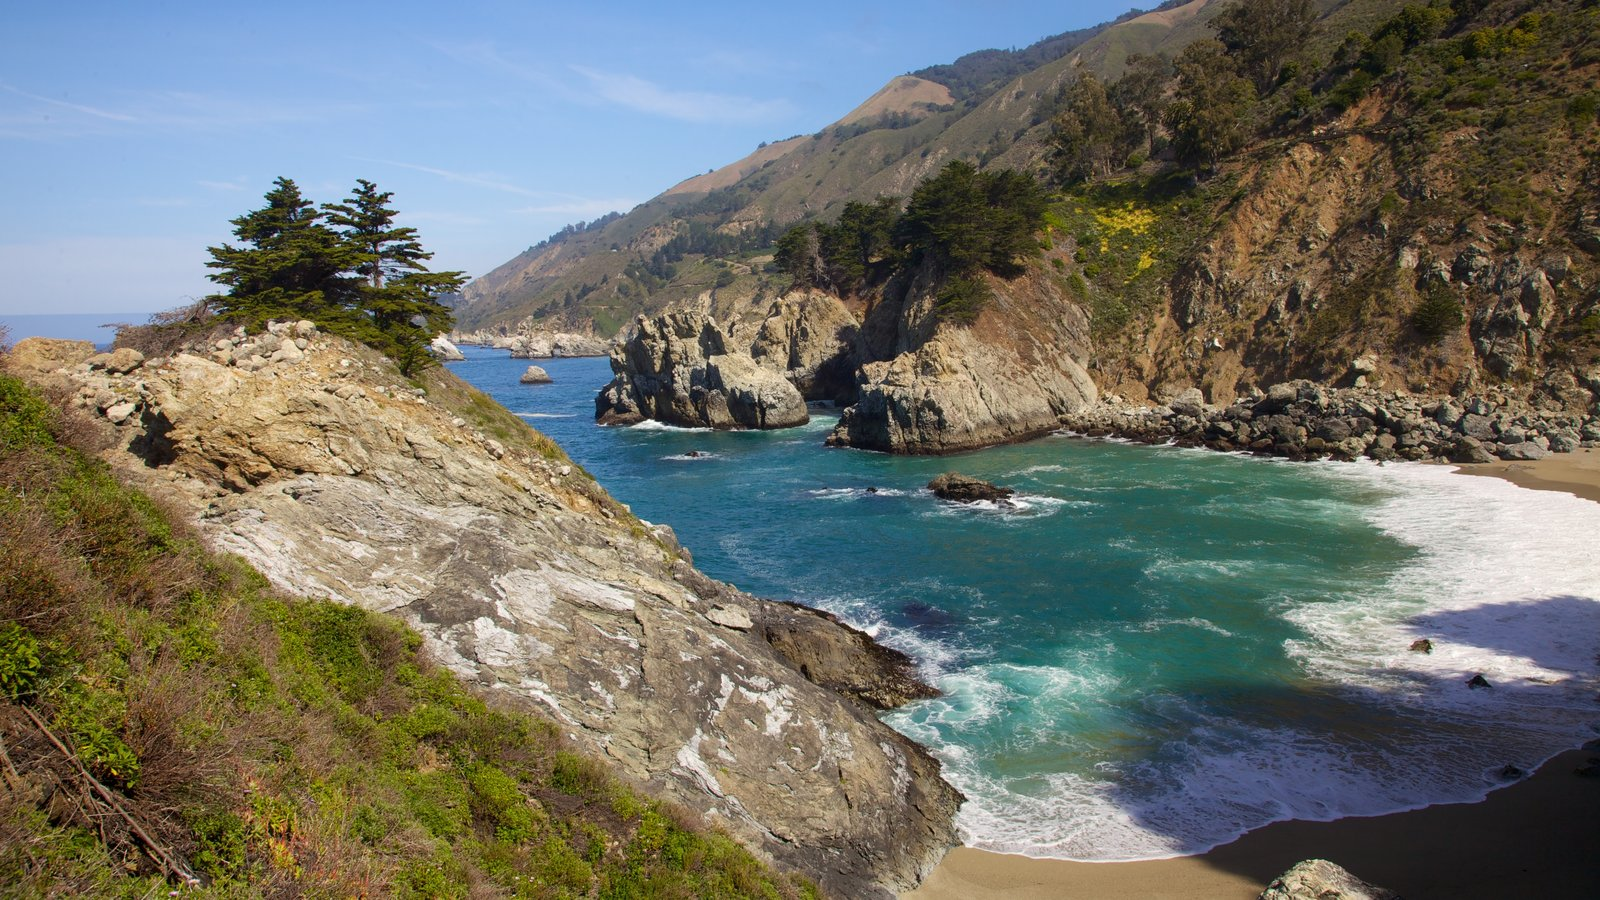 Pfeiffer Big Sur State Park featuring landscape views, rugged coastline and a river or creek